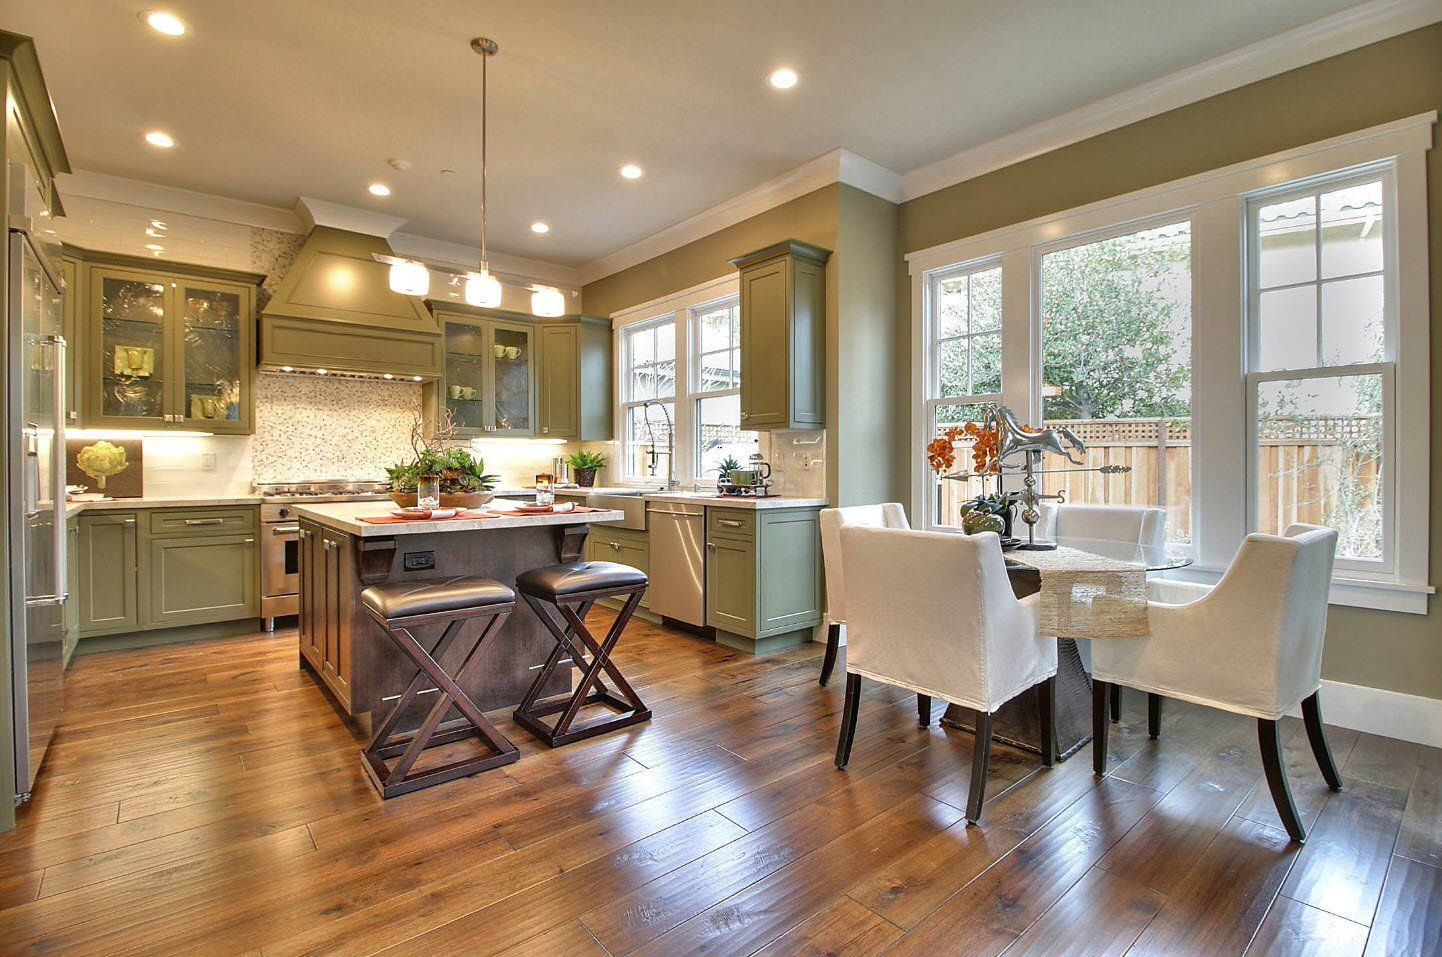 170 Square Feet Kitchen Design Ideas with Photos. Olive colored kitchen walls with white ceiling and built-in lighting